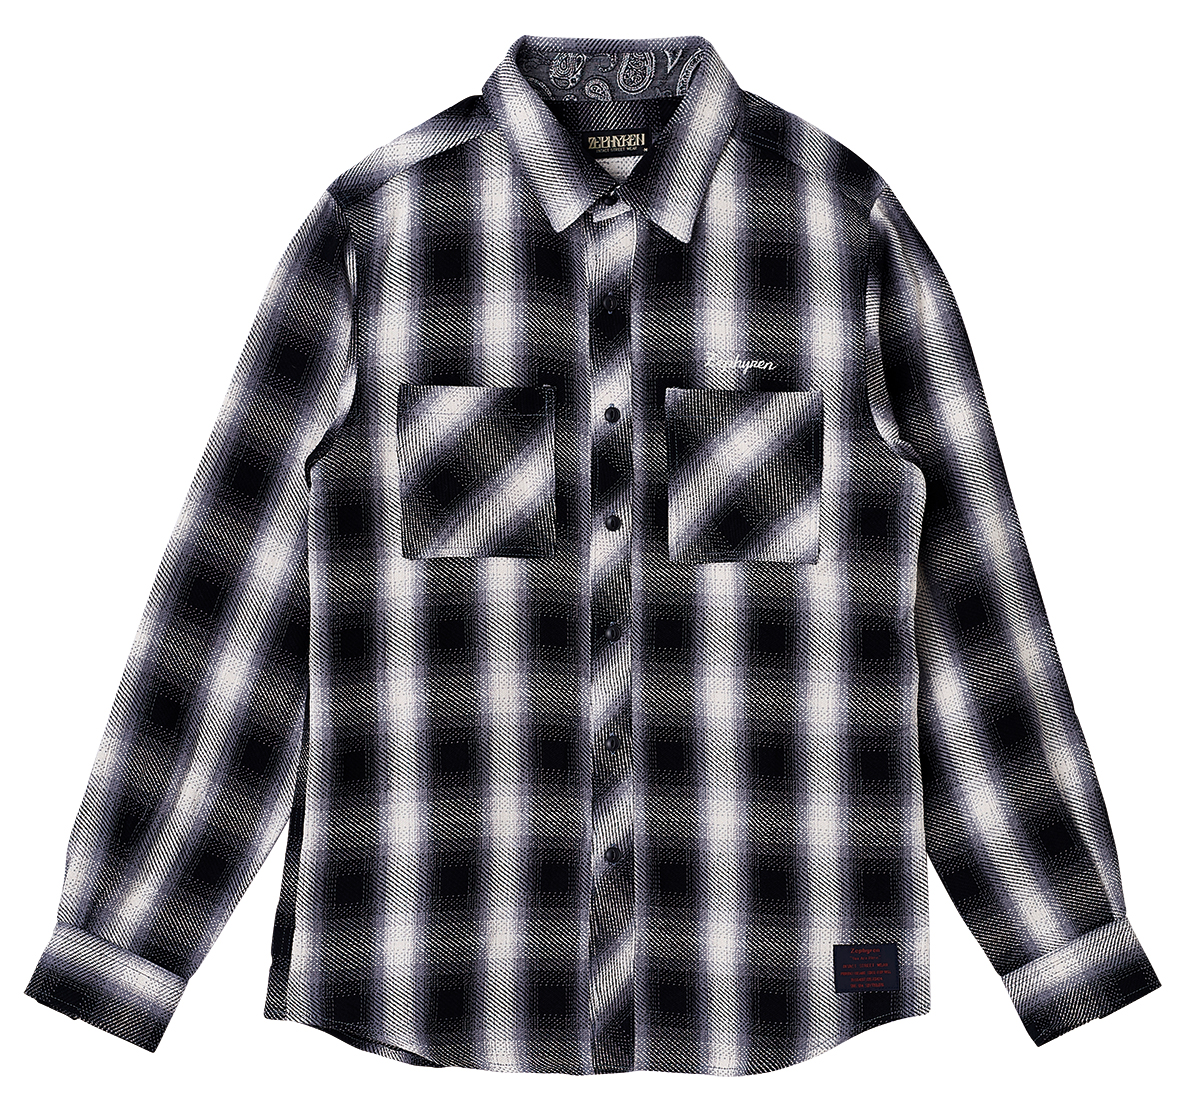 CHECK SHIRT L/S - Resolve -  BLACK / WHITE